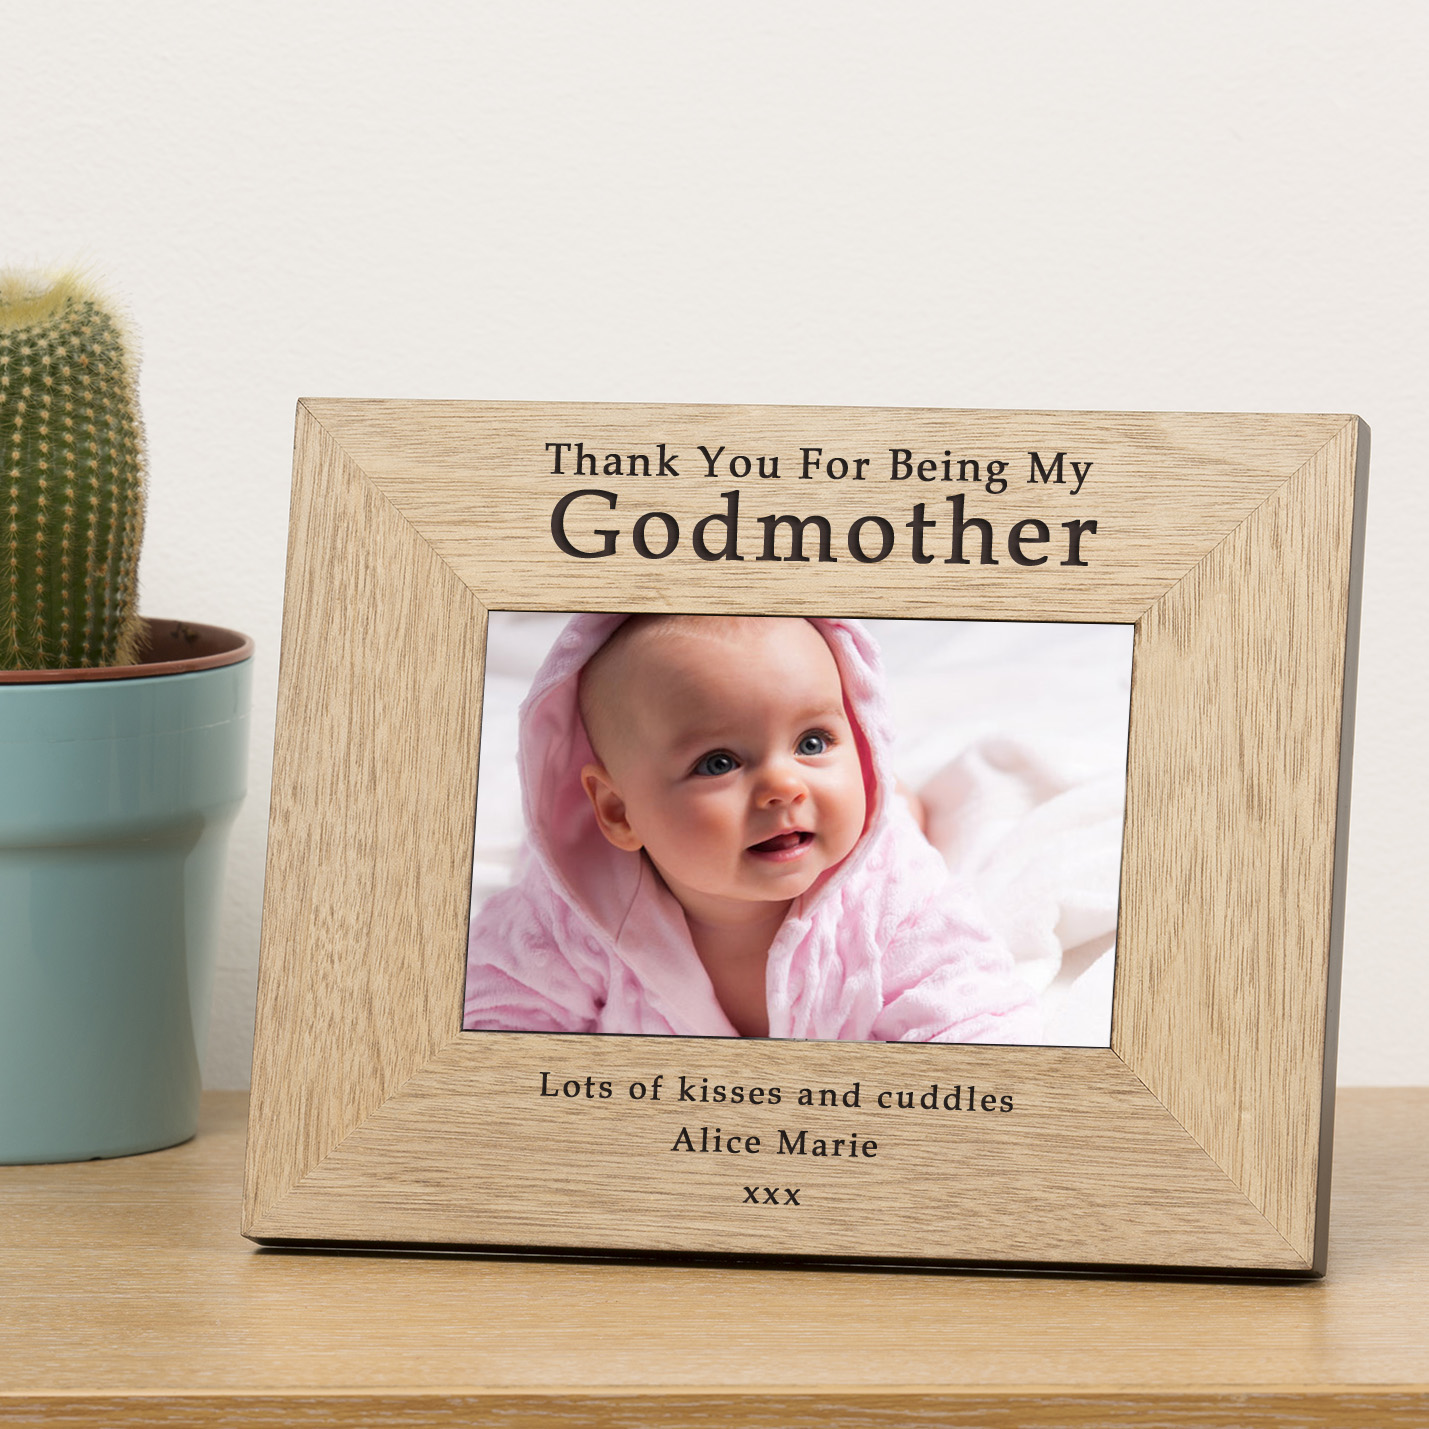 5 Best Gift Ideas for Godmothers